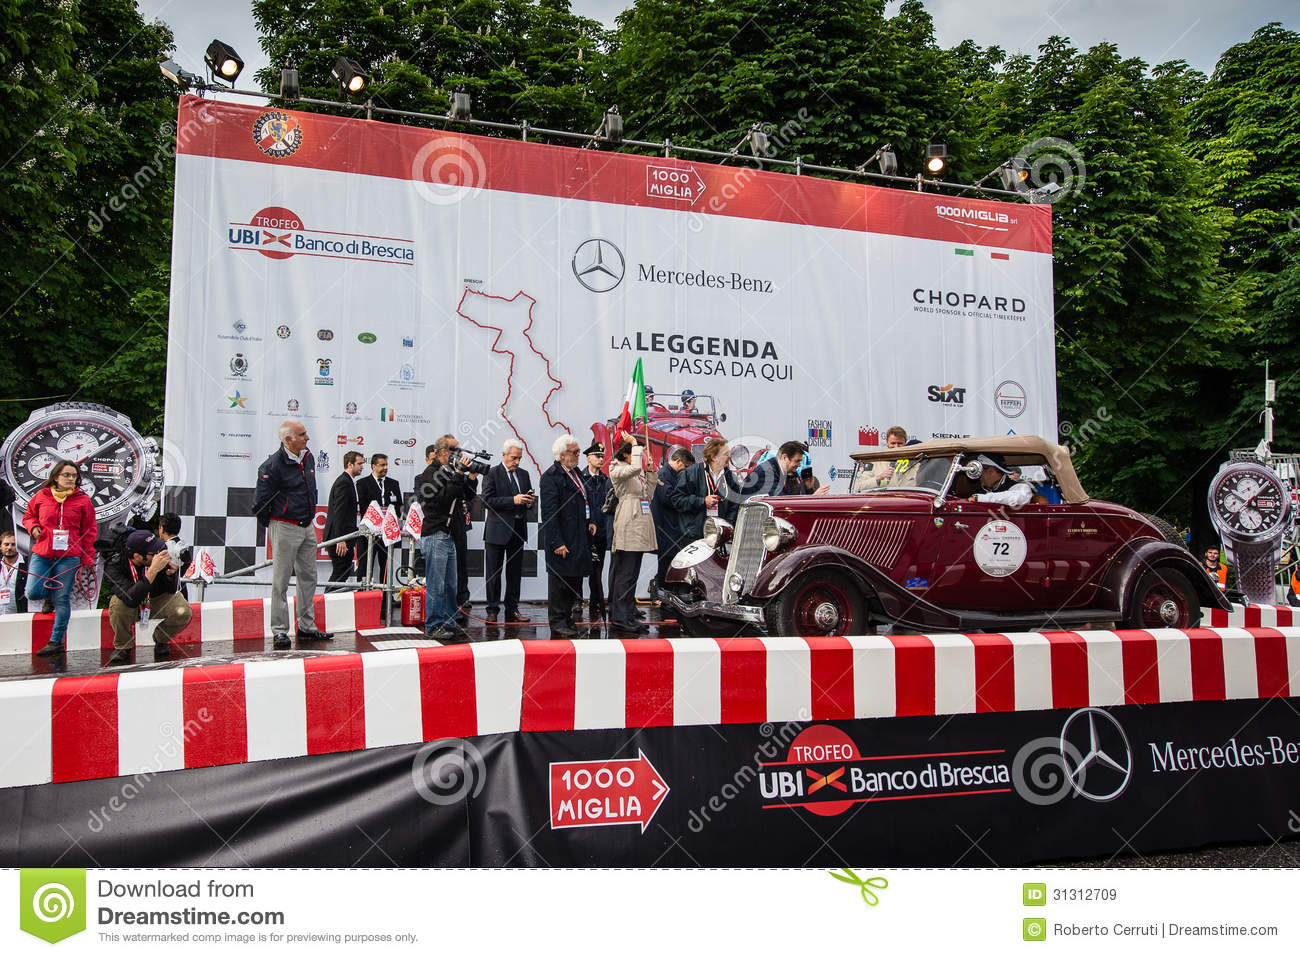 Red Ford Model B, 1933, starts the 1000 Miglia